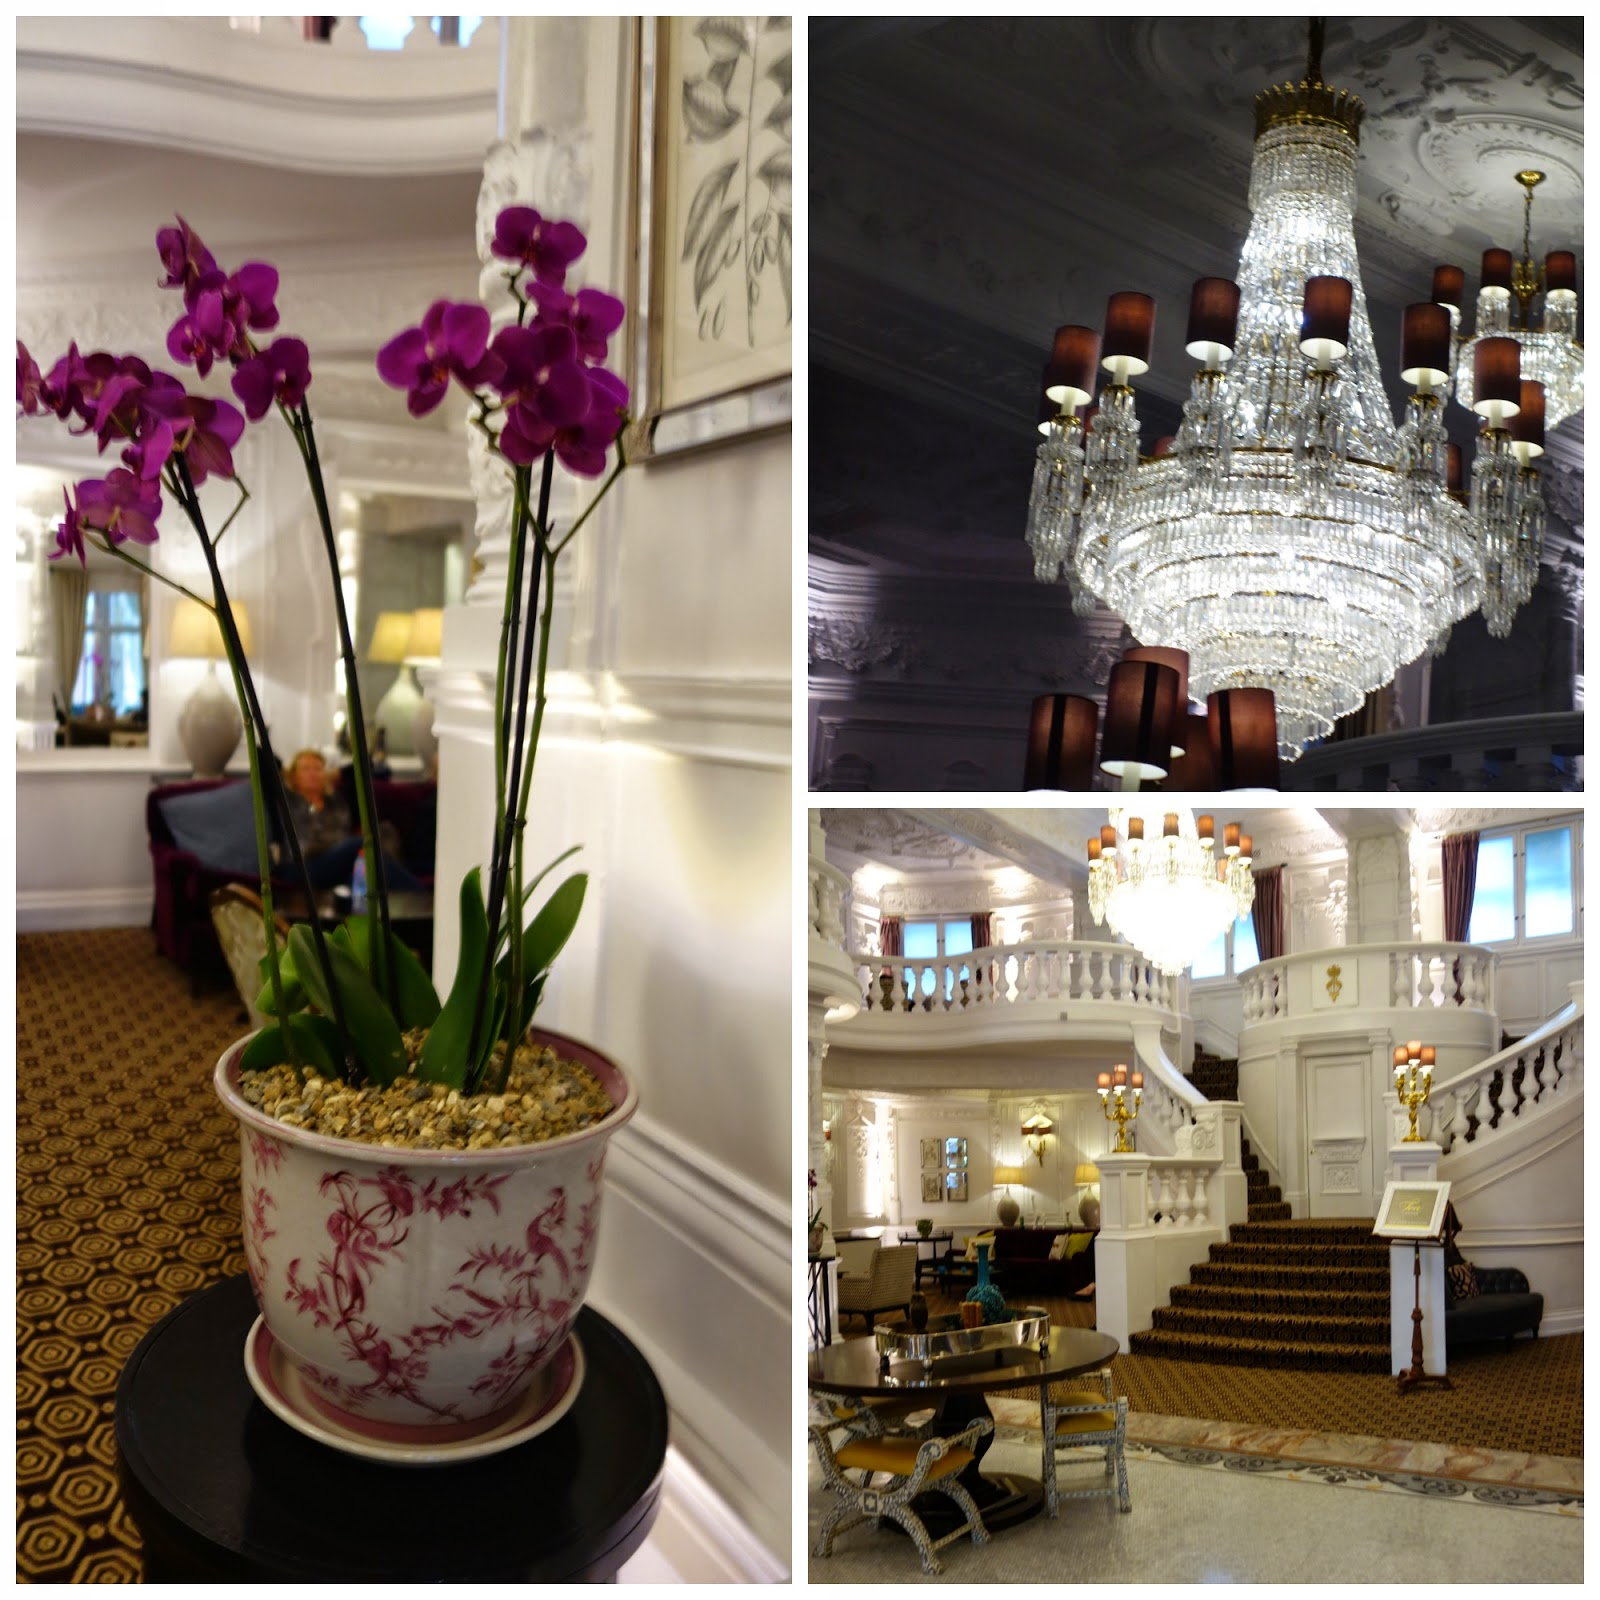 Afternoon tea at the St Ermin's Hotel